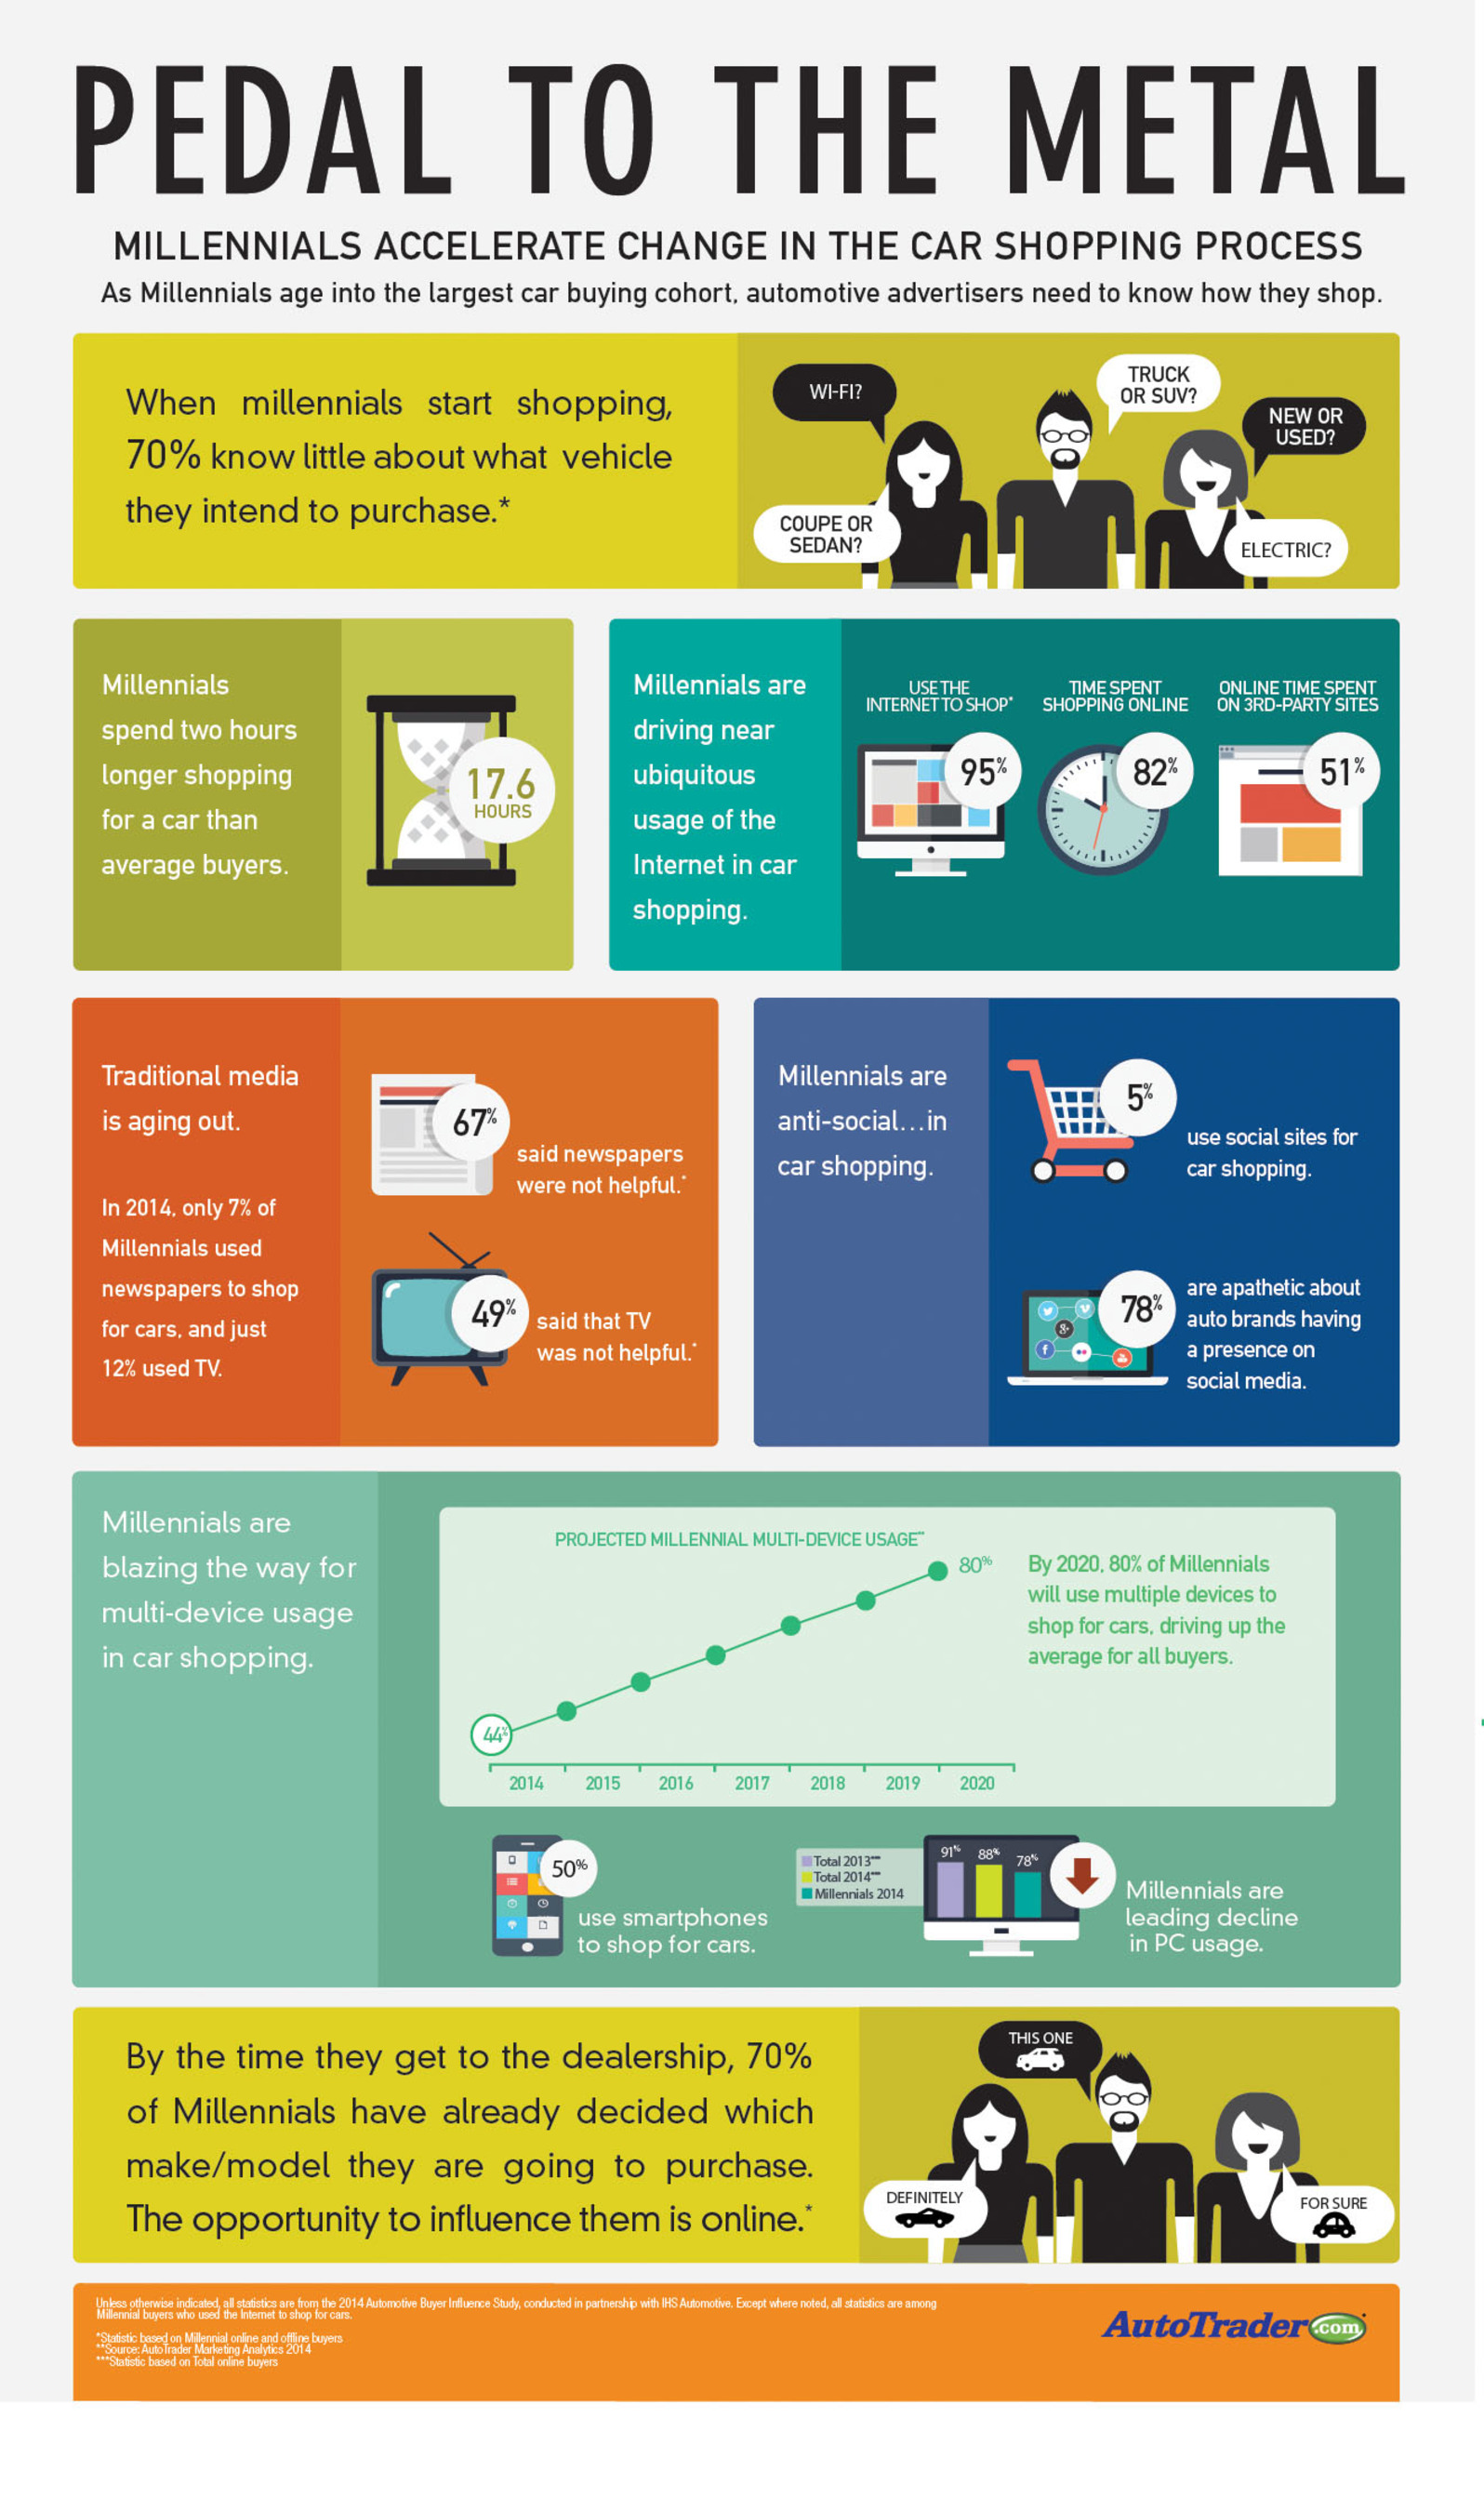 2014 AUTOMOTIVE BUYER INFLUENCE STUDY DEMONSTRATES HOW MILLENNIALS ARE ACCELERATING CHANGE IN CAR SHOPPING ...